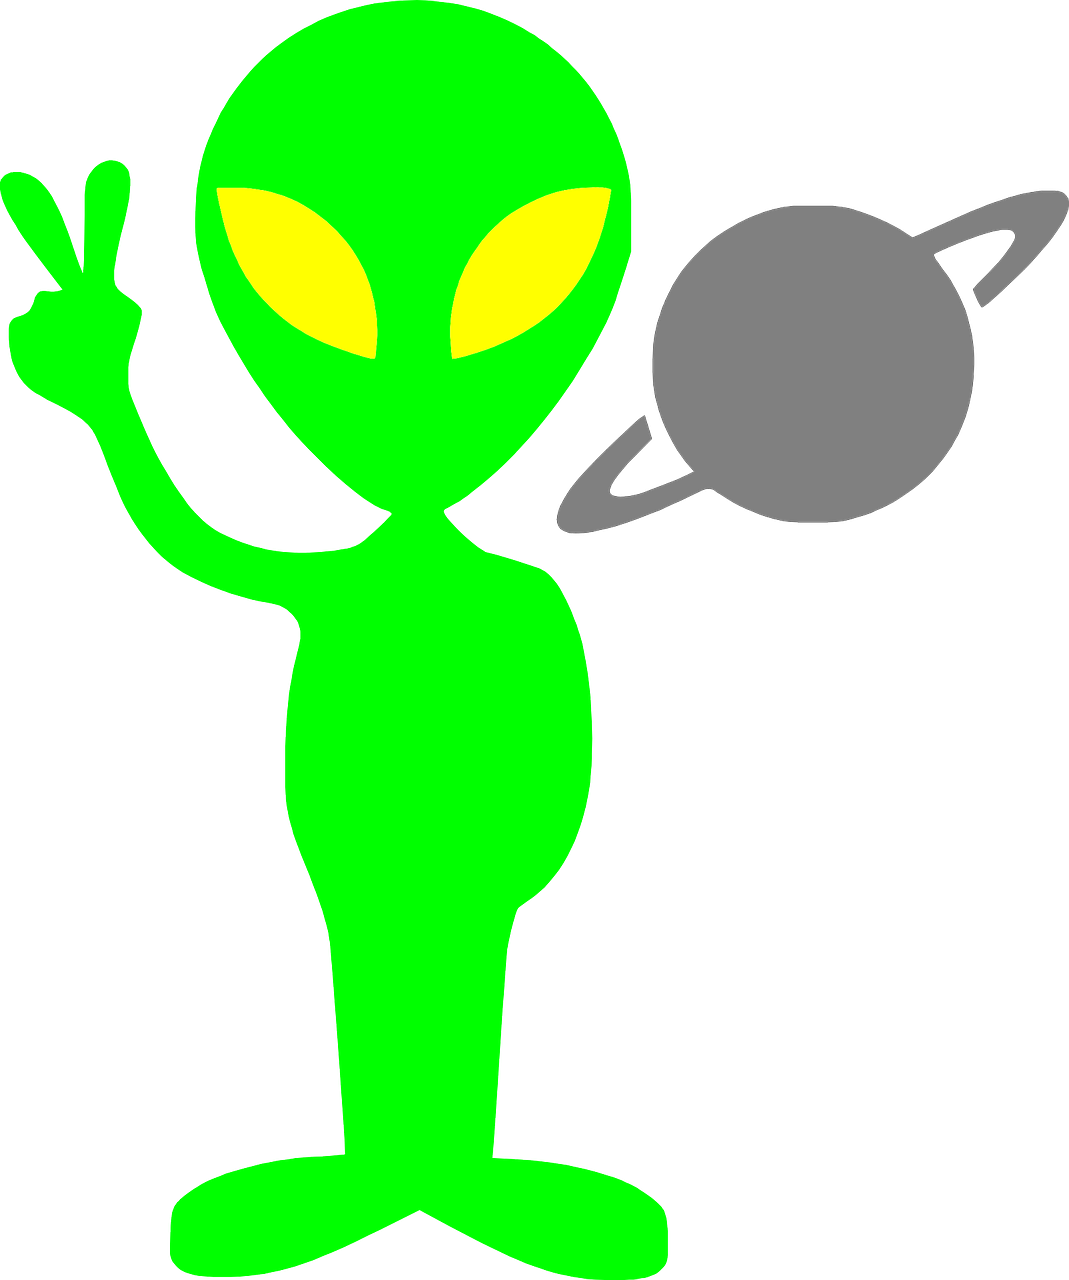 Alien clipart transparent picture library HD Alien Martian Saturn Planet Png Image - Alien Clipart , Free ... picture library